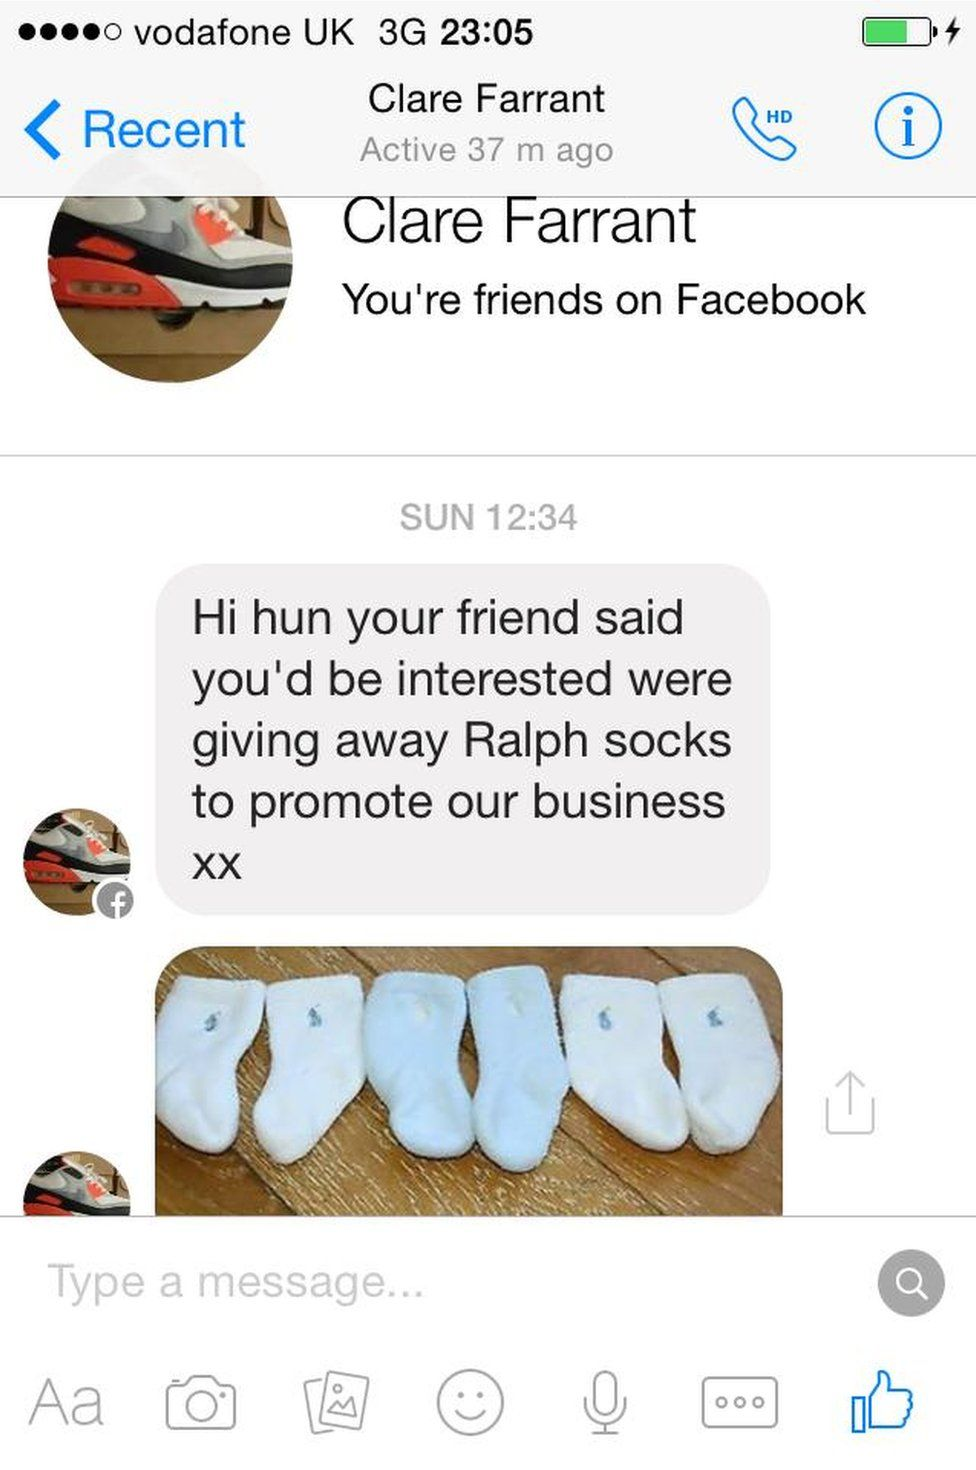 Facebook message from 'Clare Farrant'